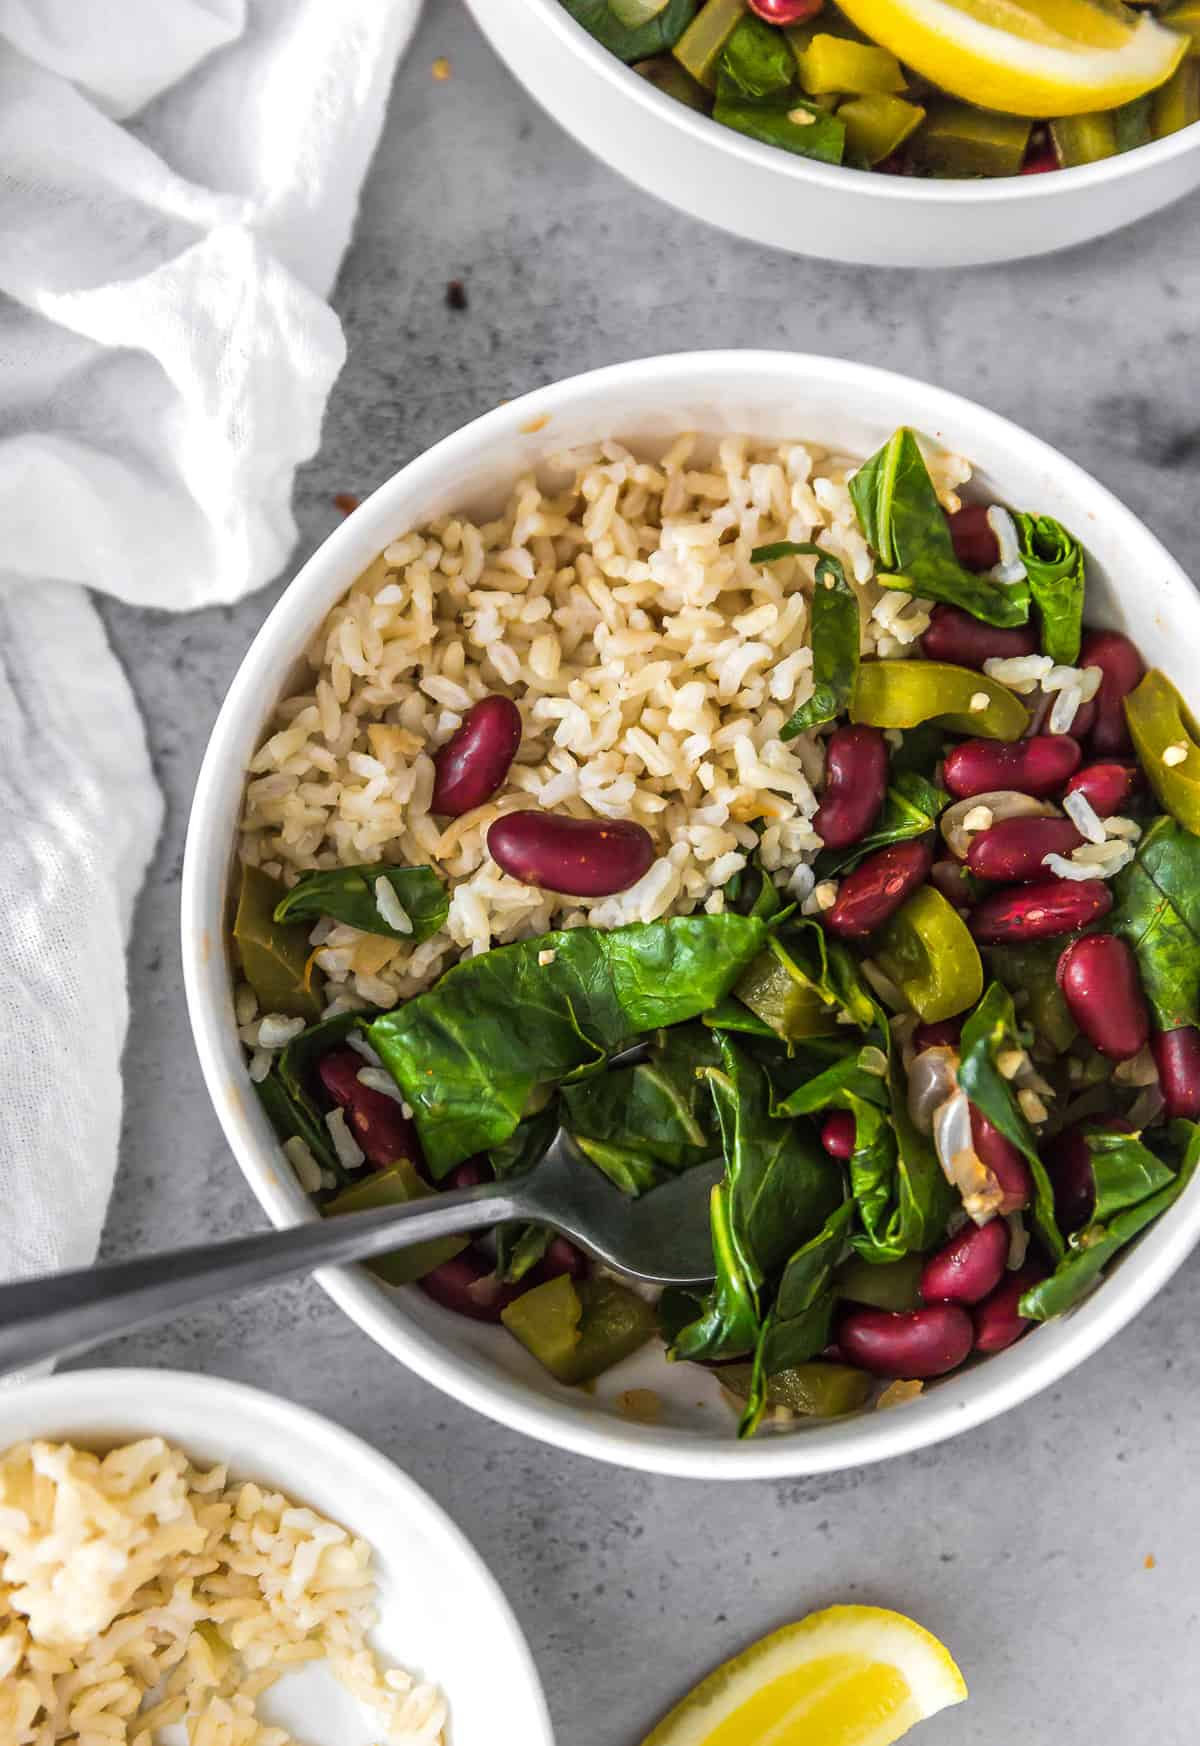 Southern Collard Greens, collard greens, plant based, vegan, vegetarian, whole food plant based, gluten free, recipe, wfpb, healthy, healthy vegan, oil free, no refined sugar, no oil, refined sugar free, dairy free, dinner, lunch, beans, legumes, greens